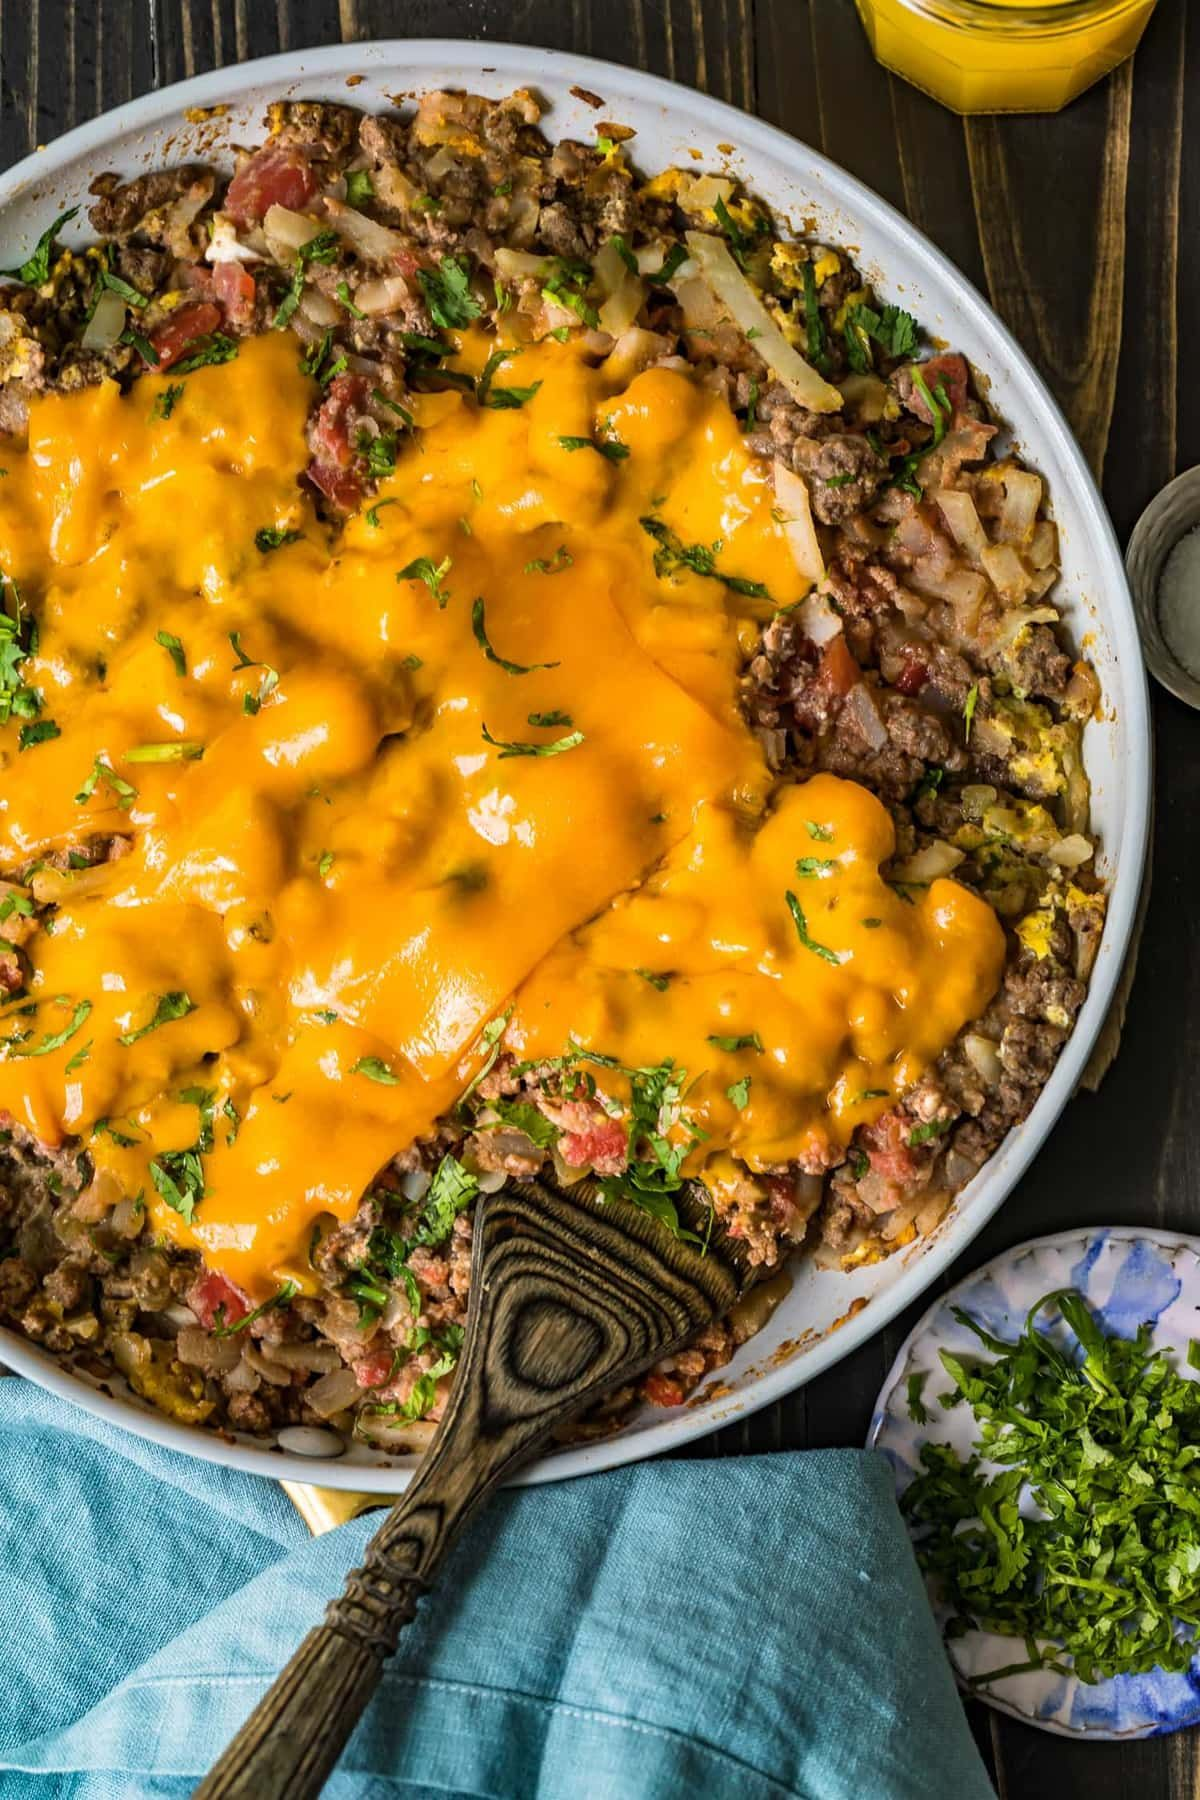 Beef Breakfast Scramble Served In A White Bowl In 2020 Beef Recipes Ground Beef Breakfast Breakfast Skillet